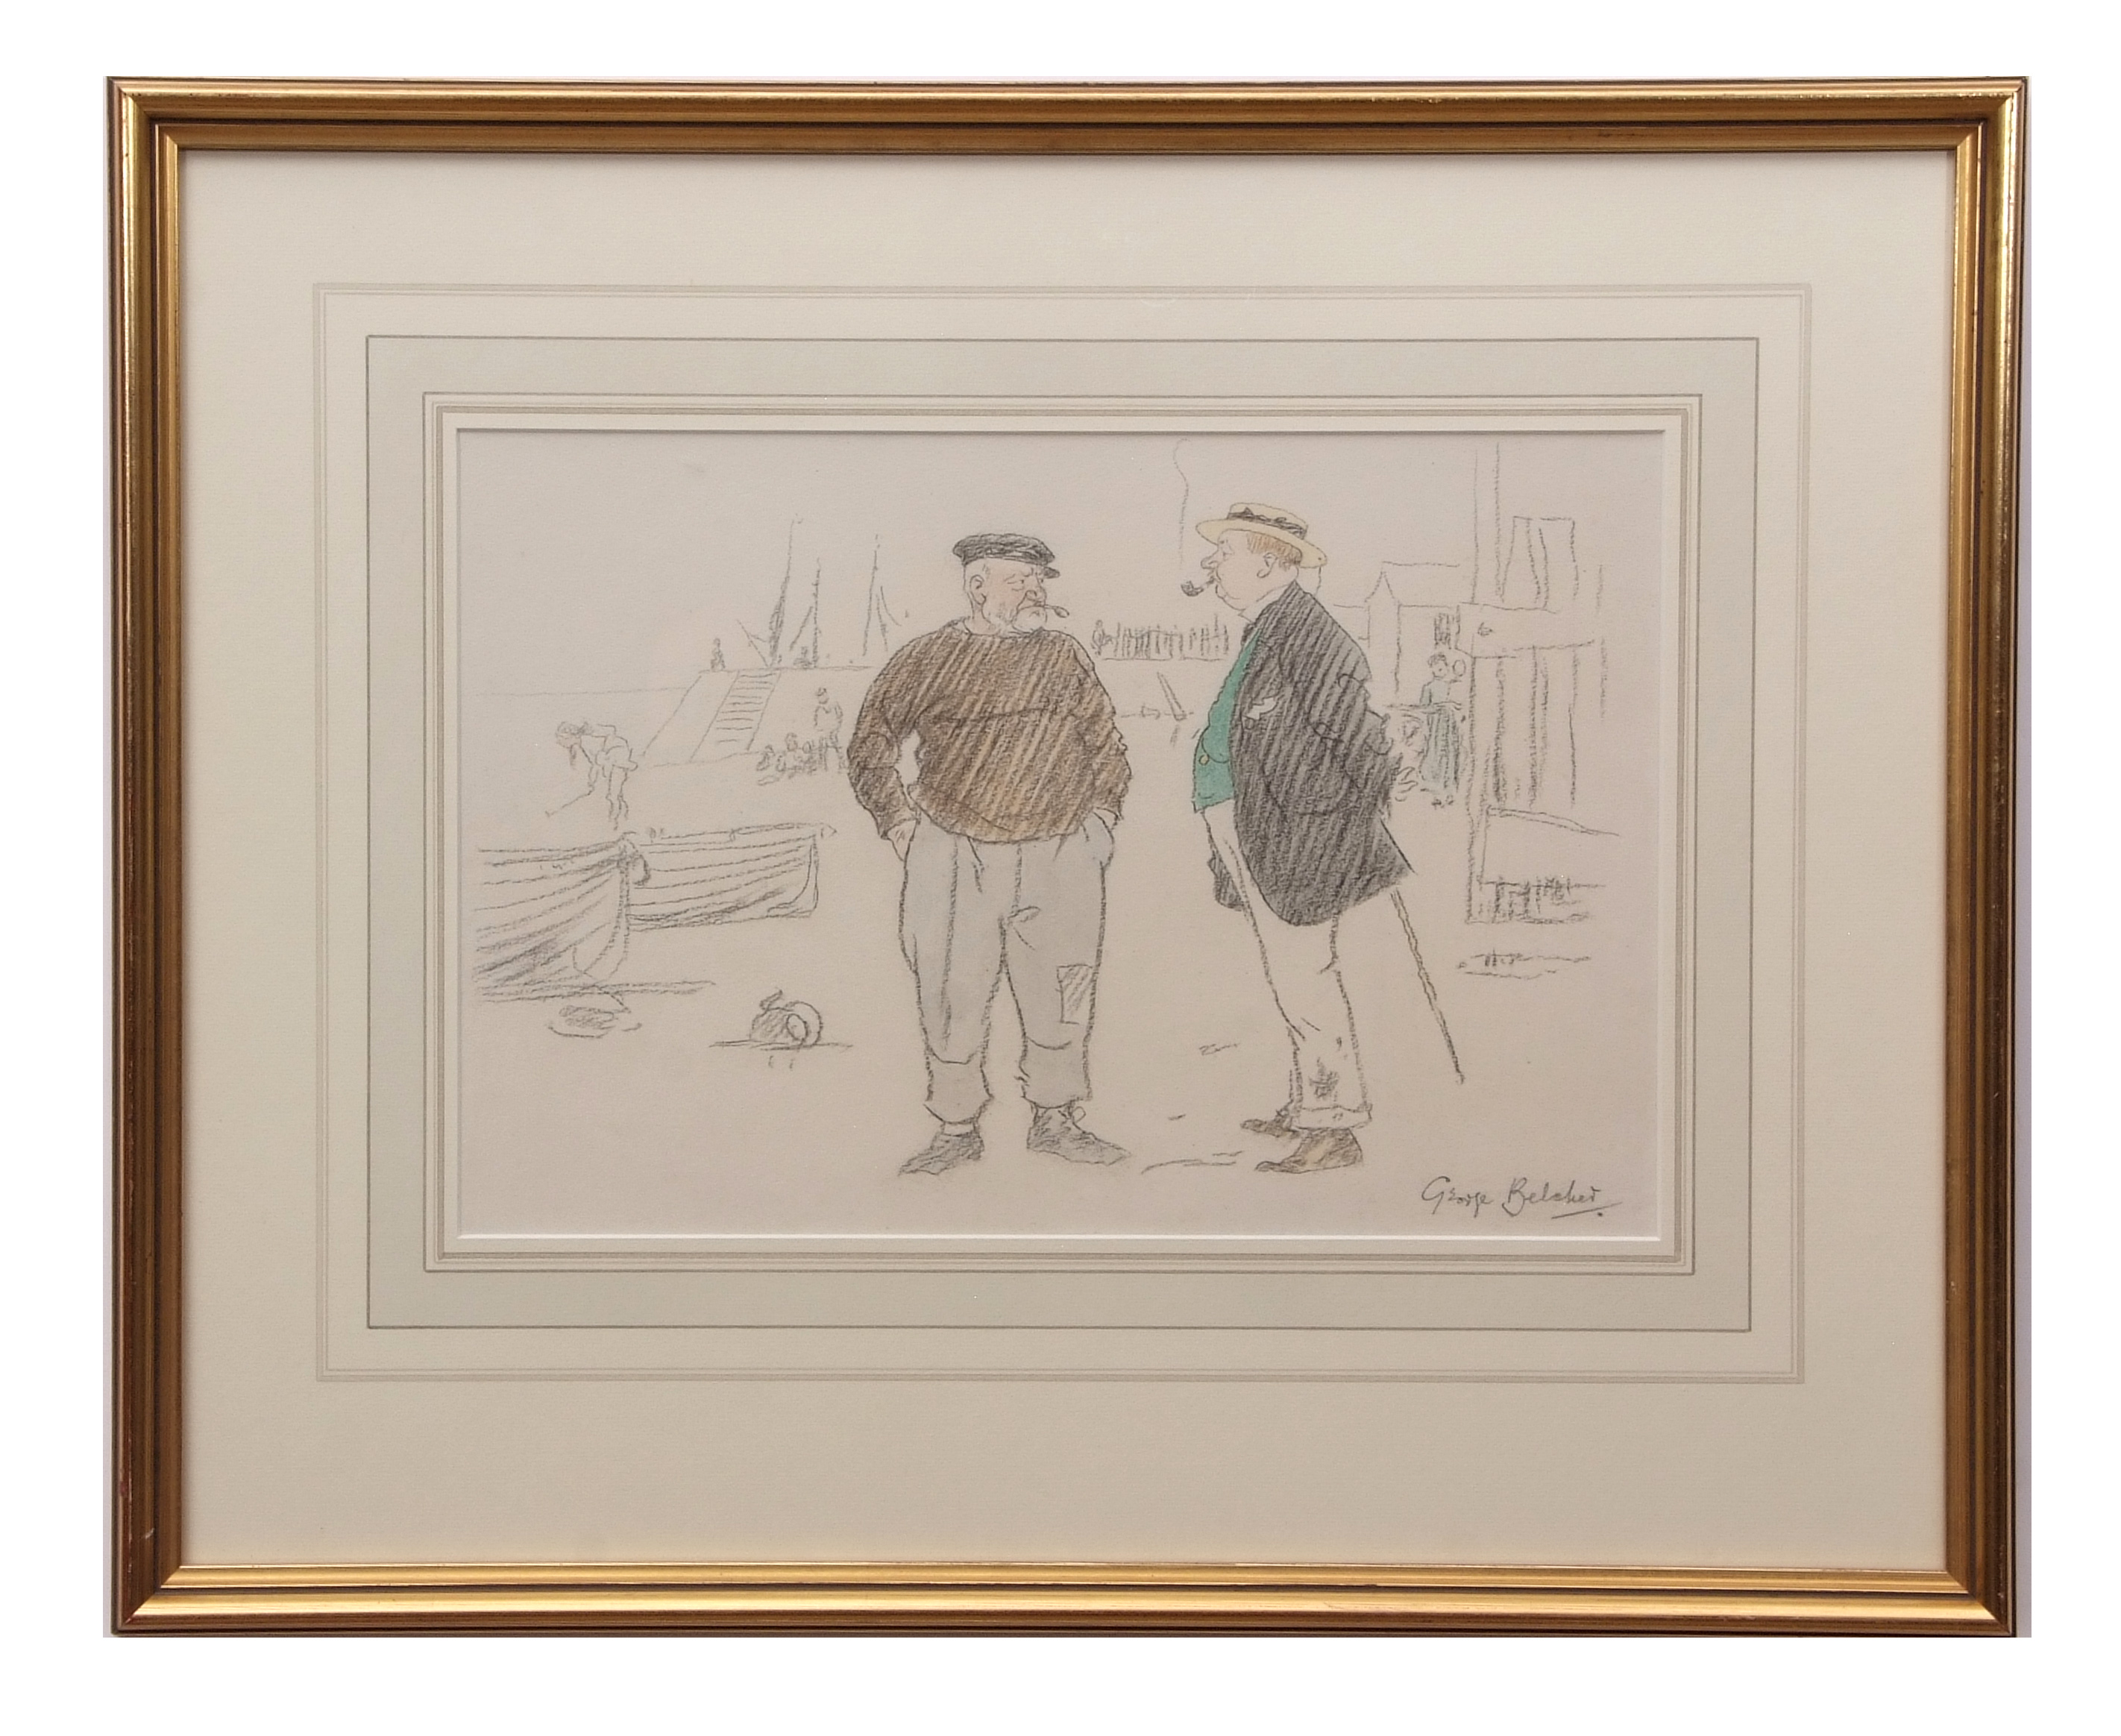 """George Belcher (1875-1947) """"Tell you what that is Sir, that there ,,,"""" pencil and watercolour, - Image 2 of 2"""